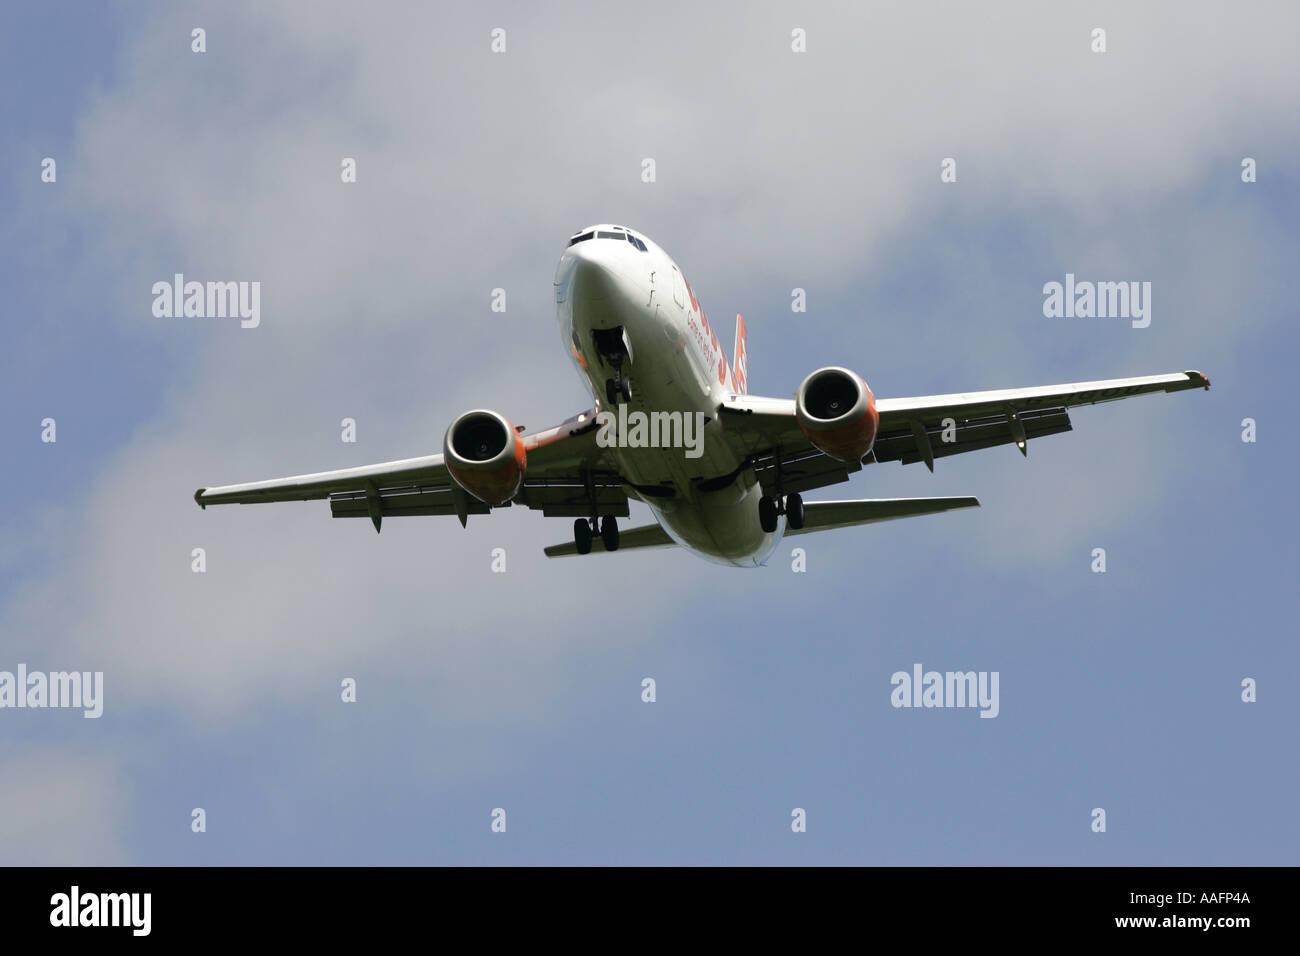 Easyjet Boeing 737 aircraft on approach belfast international airport aldergrove county antrim northern ireland - Stock Image